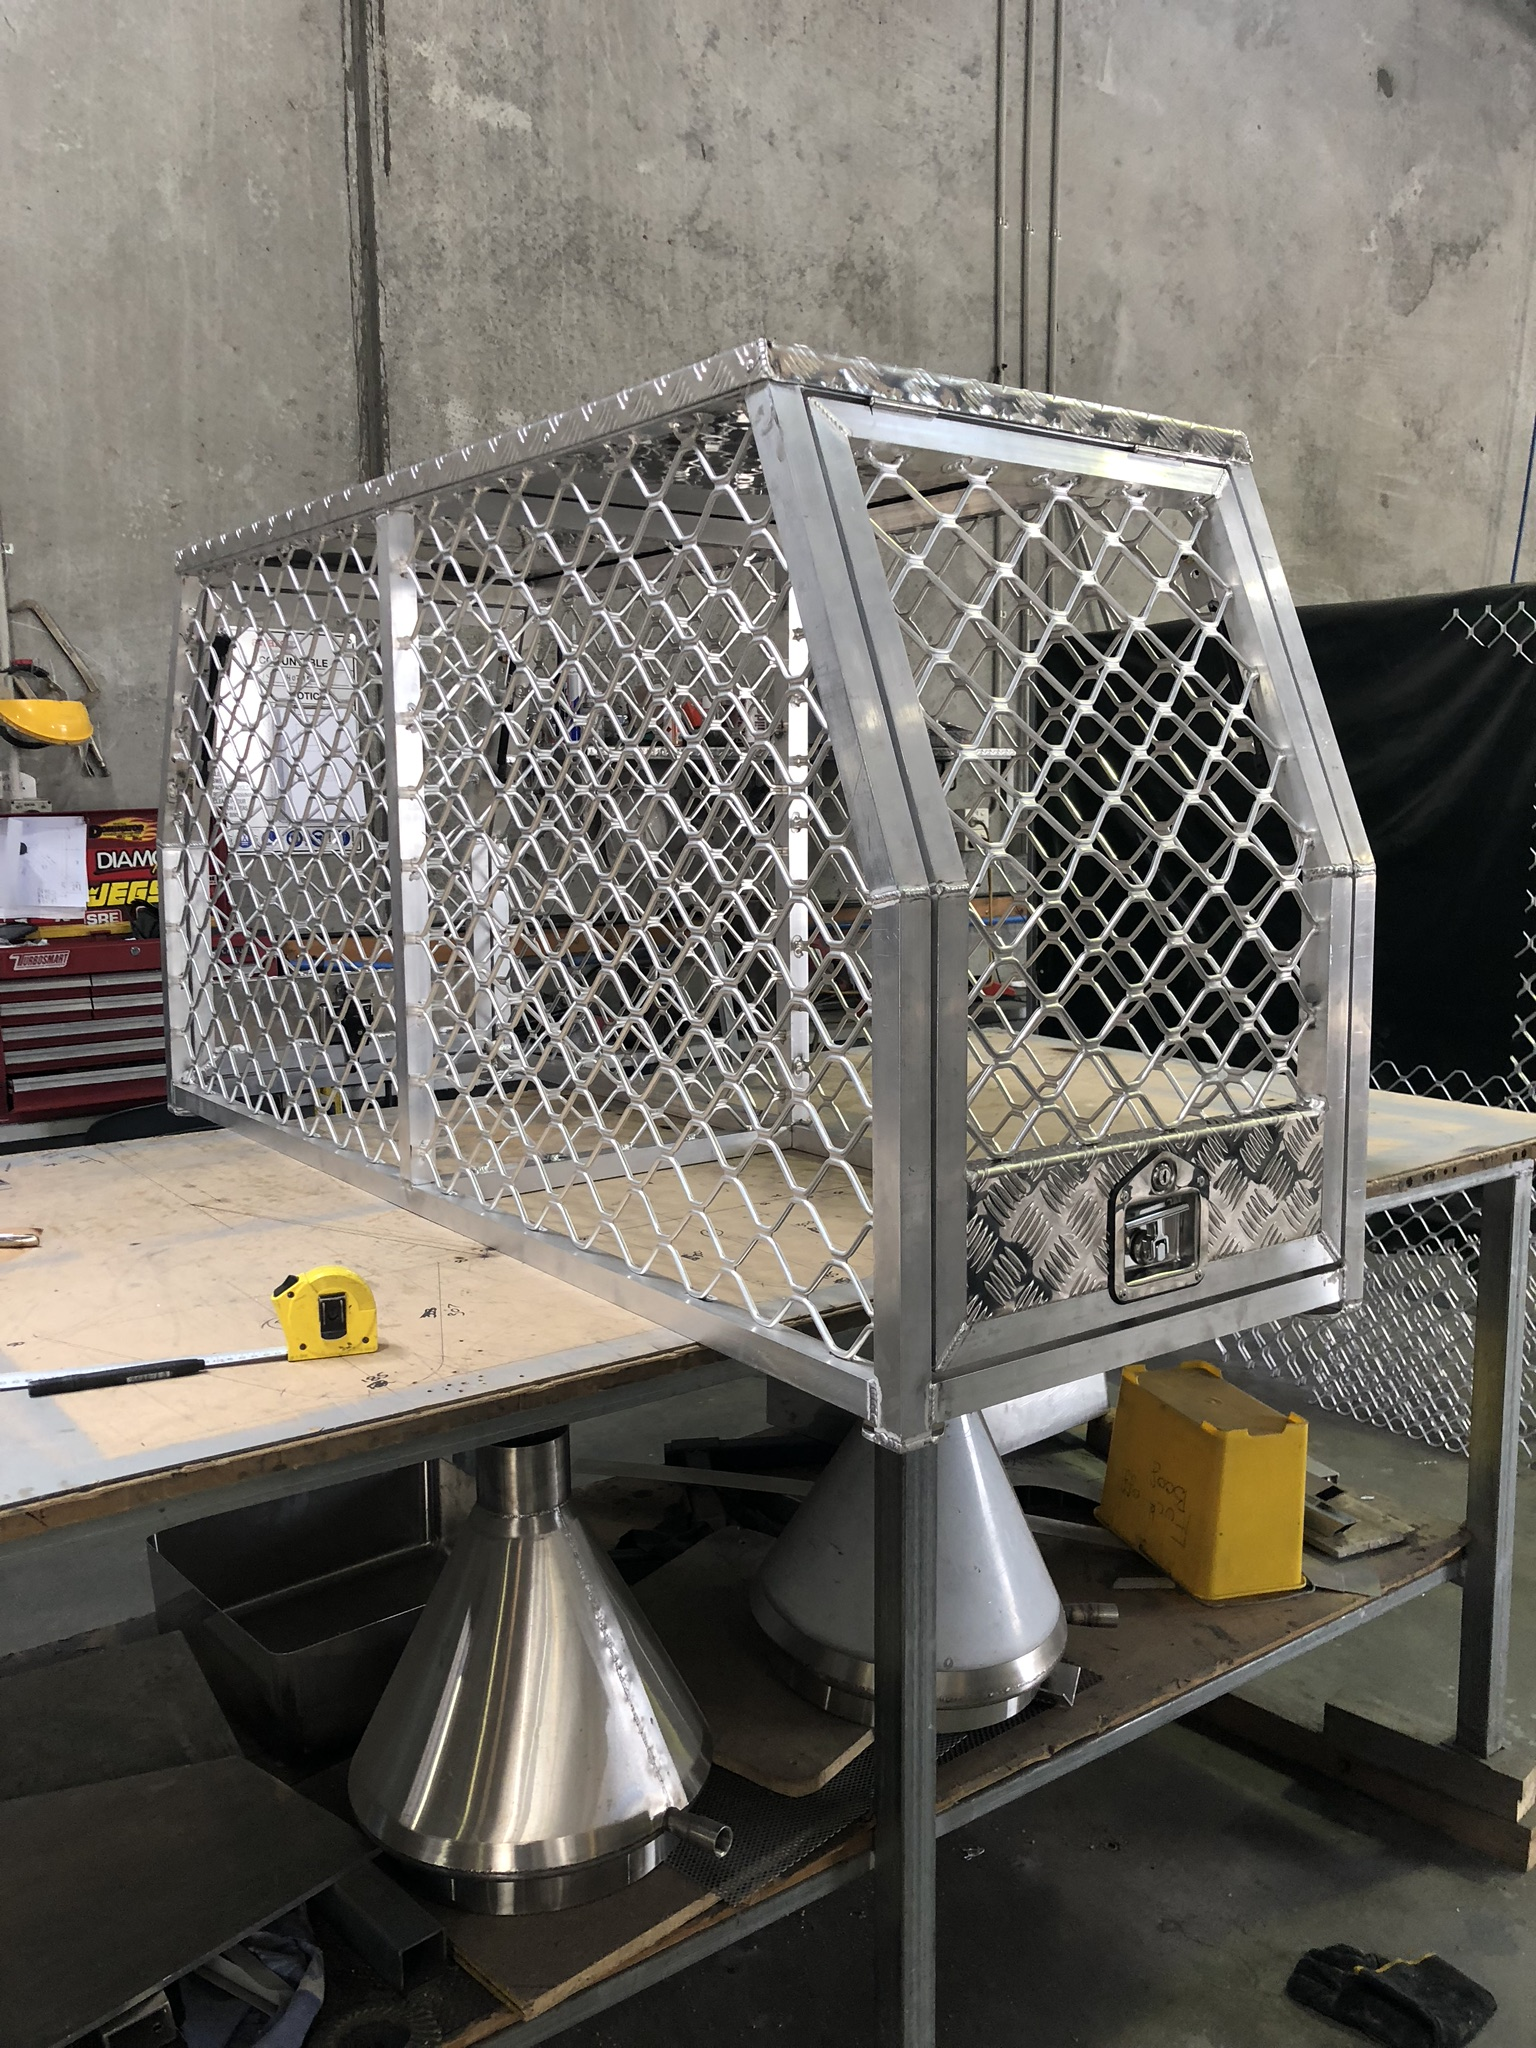 Aluminium dog box with security mesh